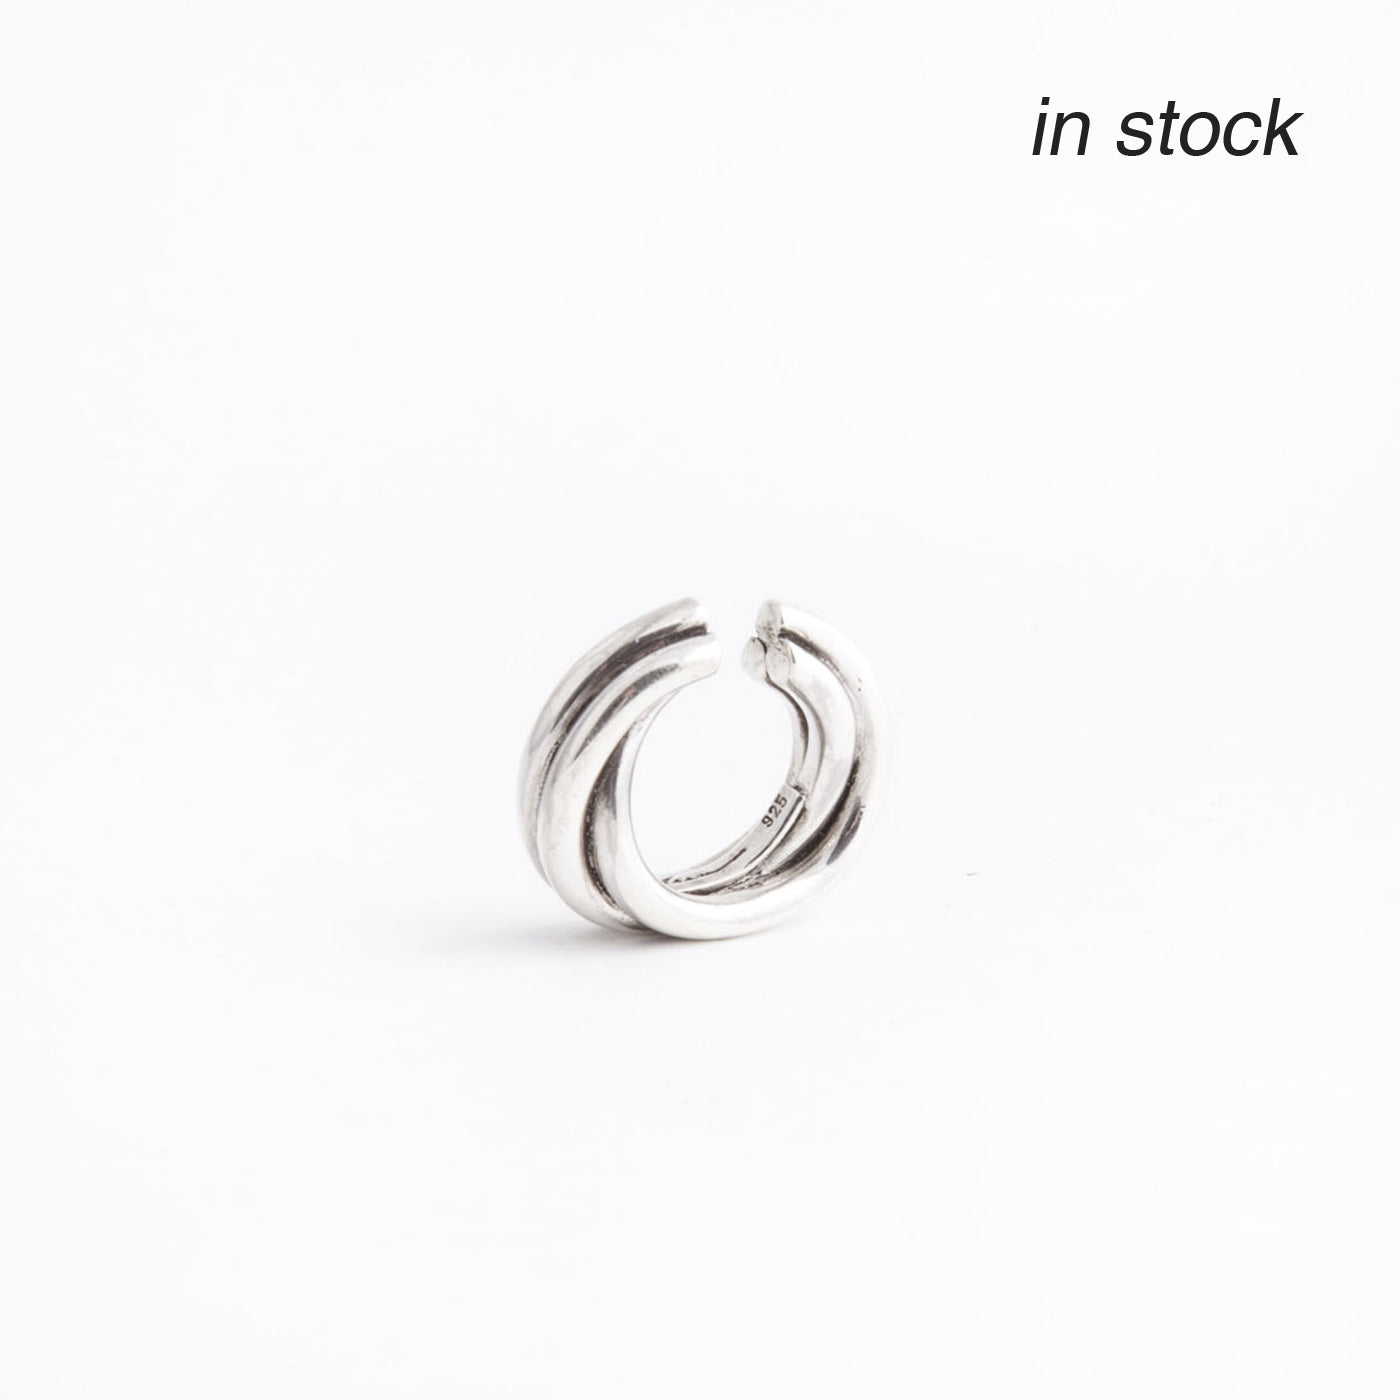 ear cuff flow silver product view innan jewellery in stock